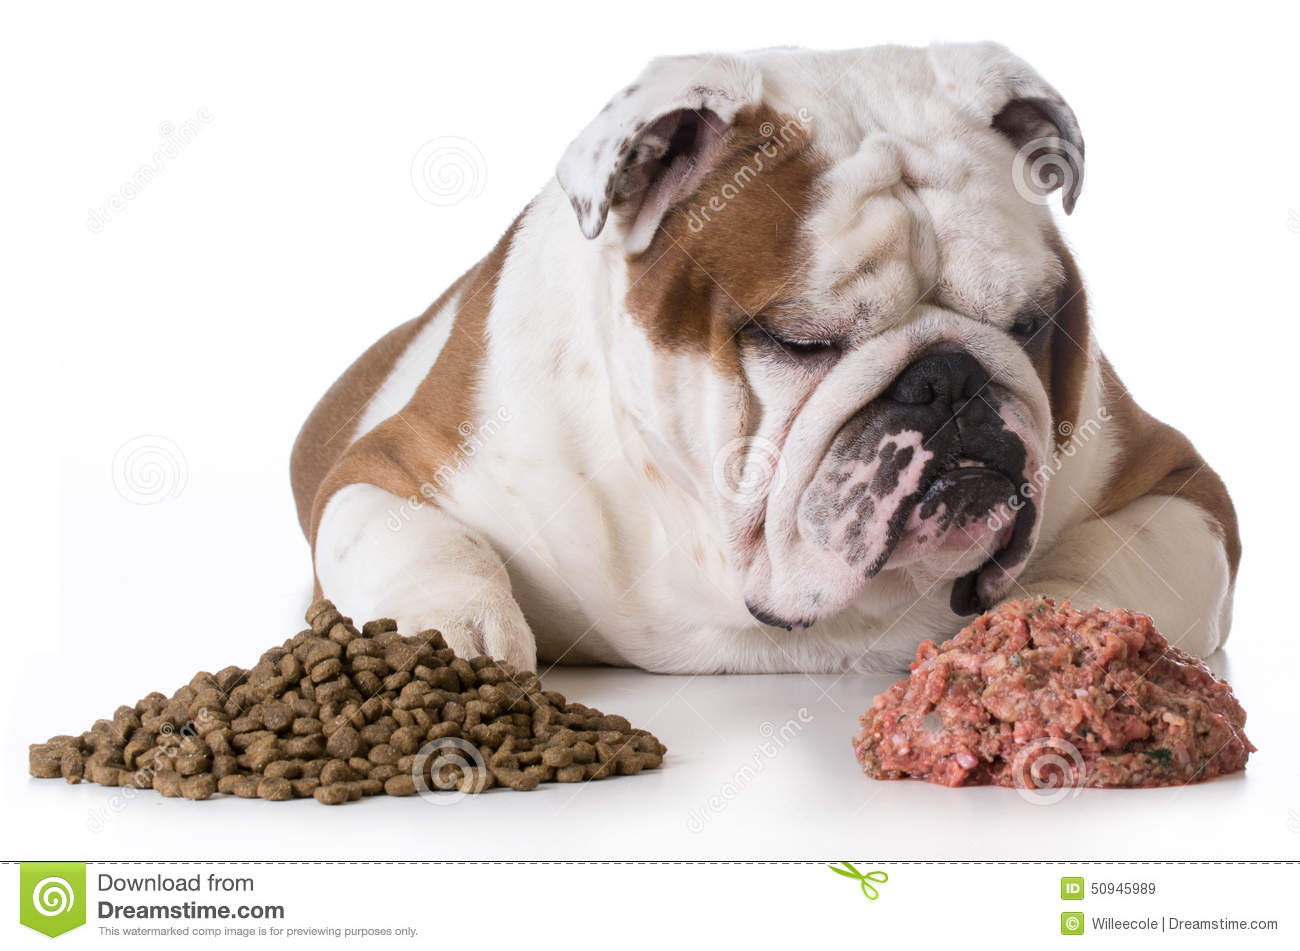 How To Switch Dog From Raw Food To Kibble